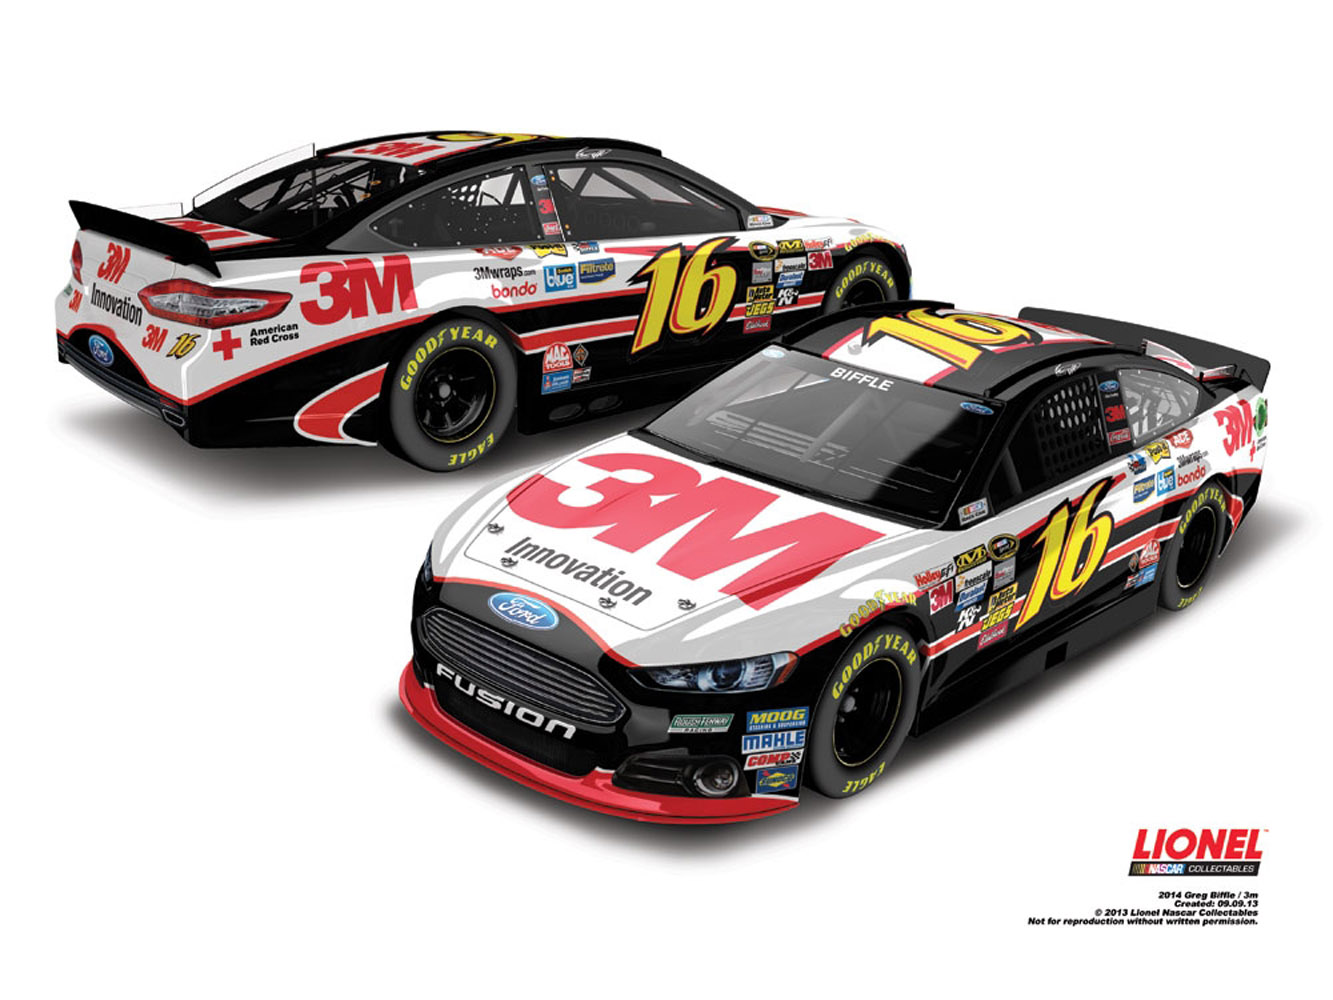 2014 Greg Biffle #16 3M 1:64 Diecast Car